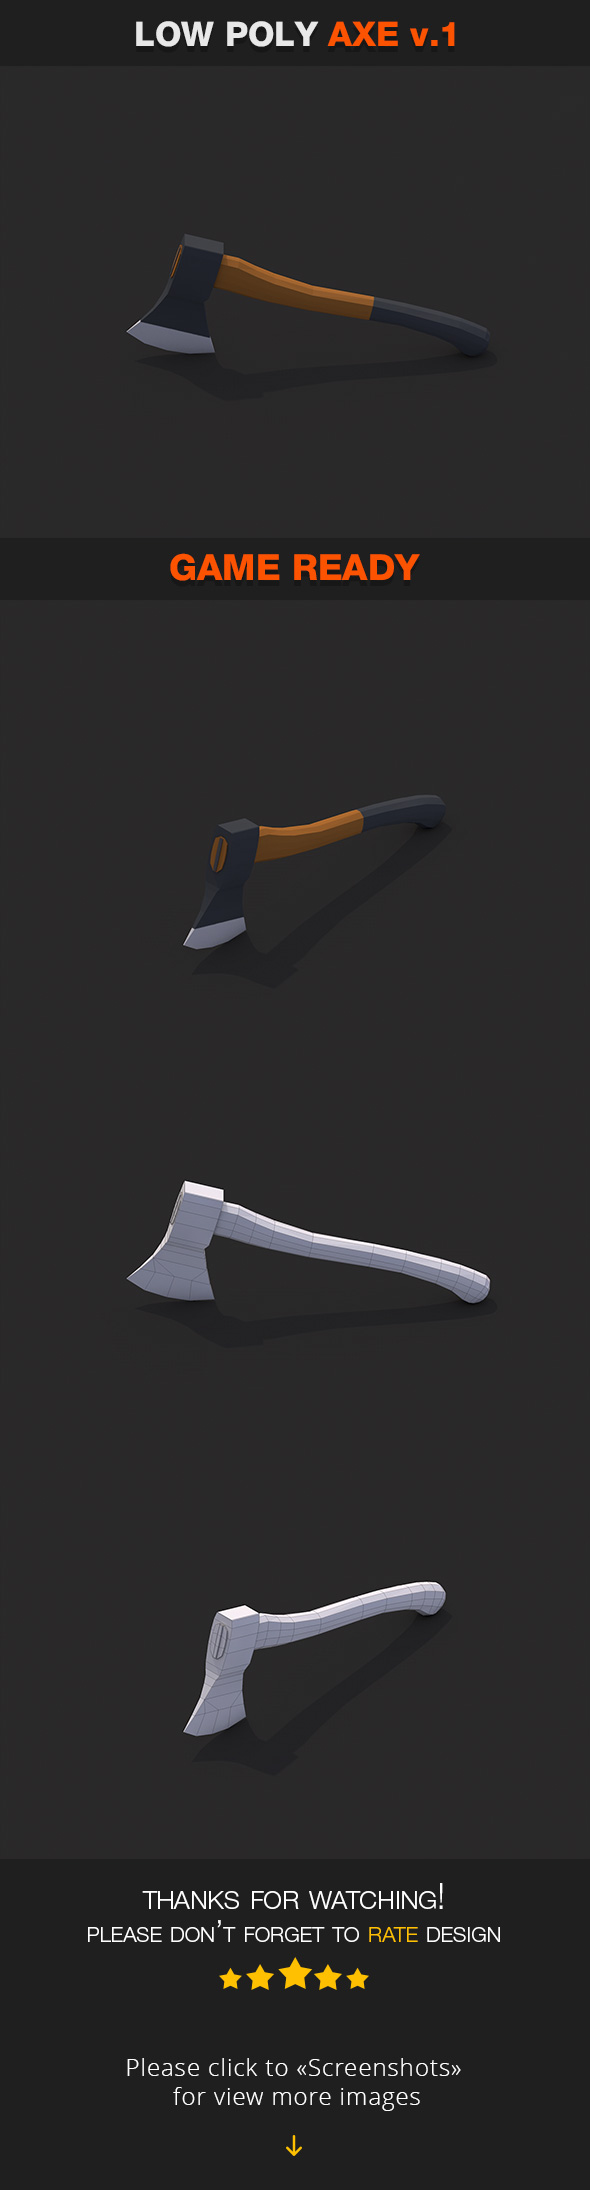 Low Poly Axe v.1 - 3DOcean Item for Sale